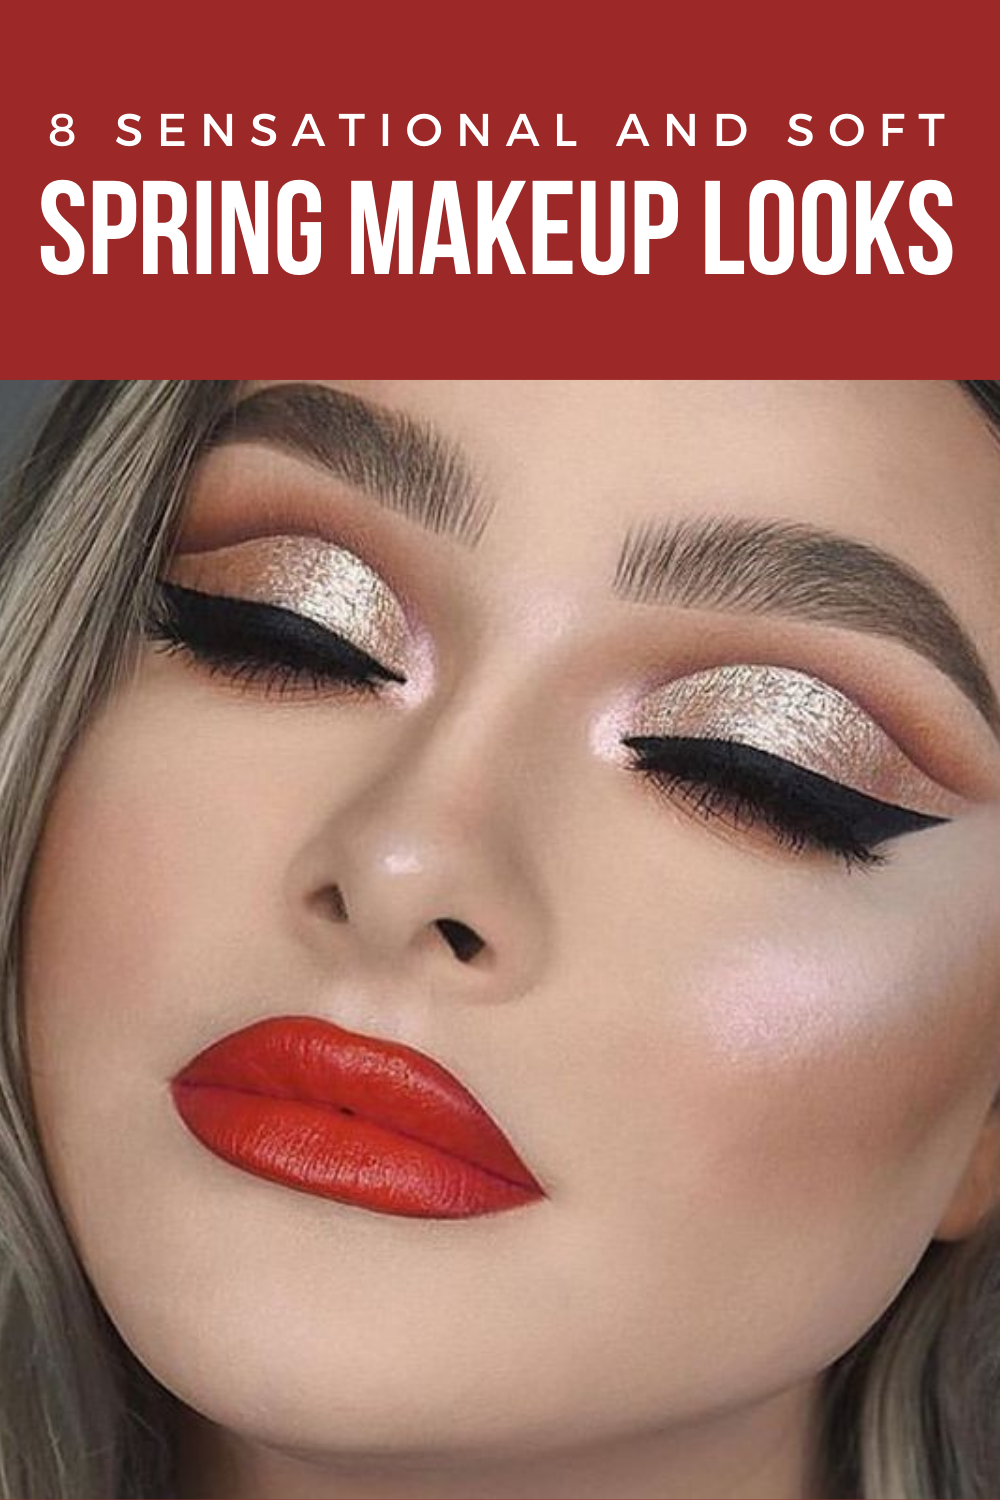 8 Soft Makeups For Spring To Look More Sensational Make Them Count In 2020 Spring Makeup Soft Makeup Soft Makeup Looks